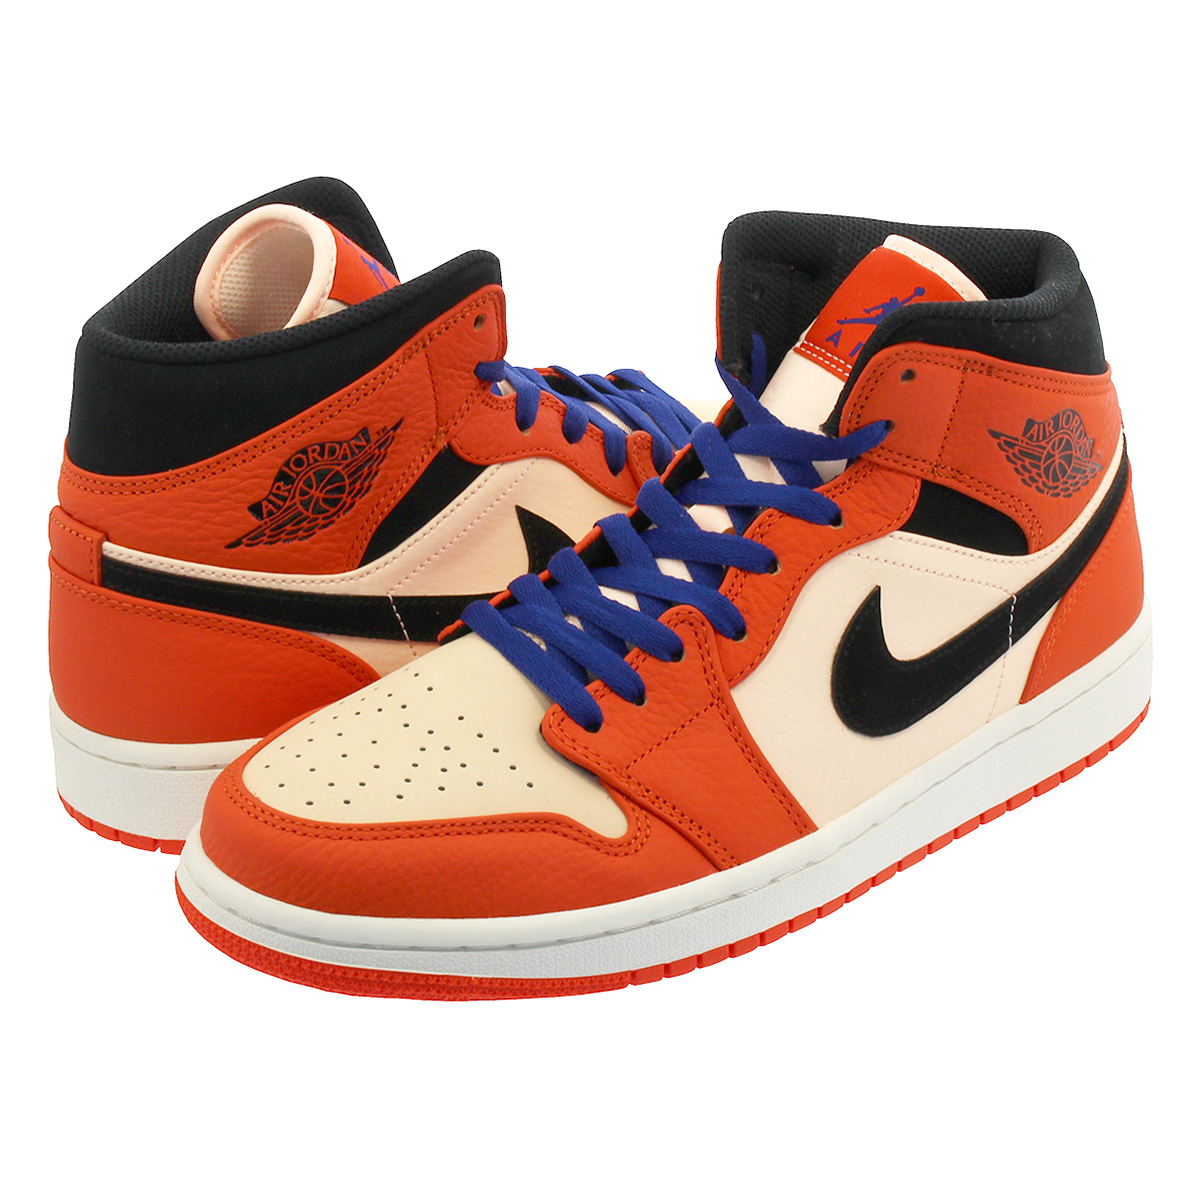 NIKE AIR JORDAN 1 MID SE Nike Air Jordan 1 mid SE TEAM ORANGE/BLACK/CRIMSON  TINT 852,542-800